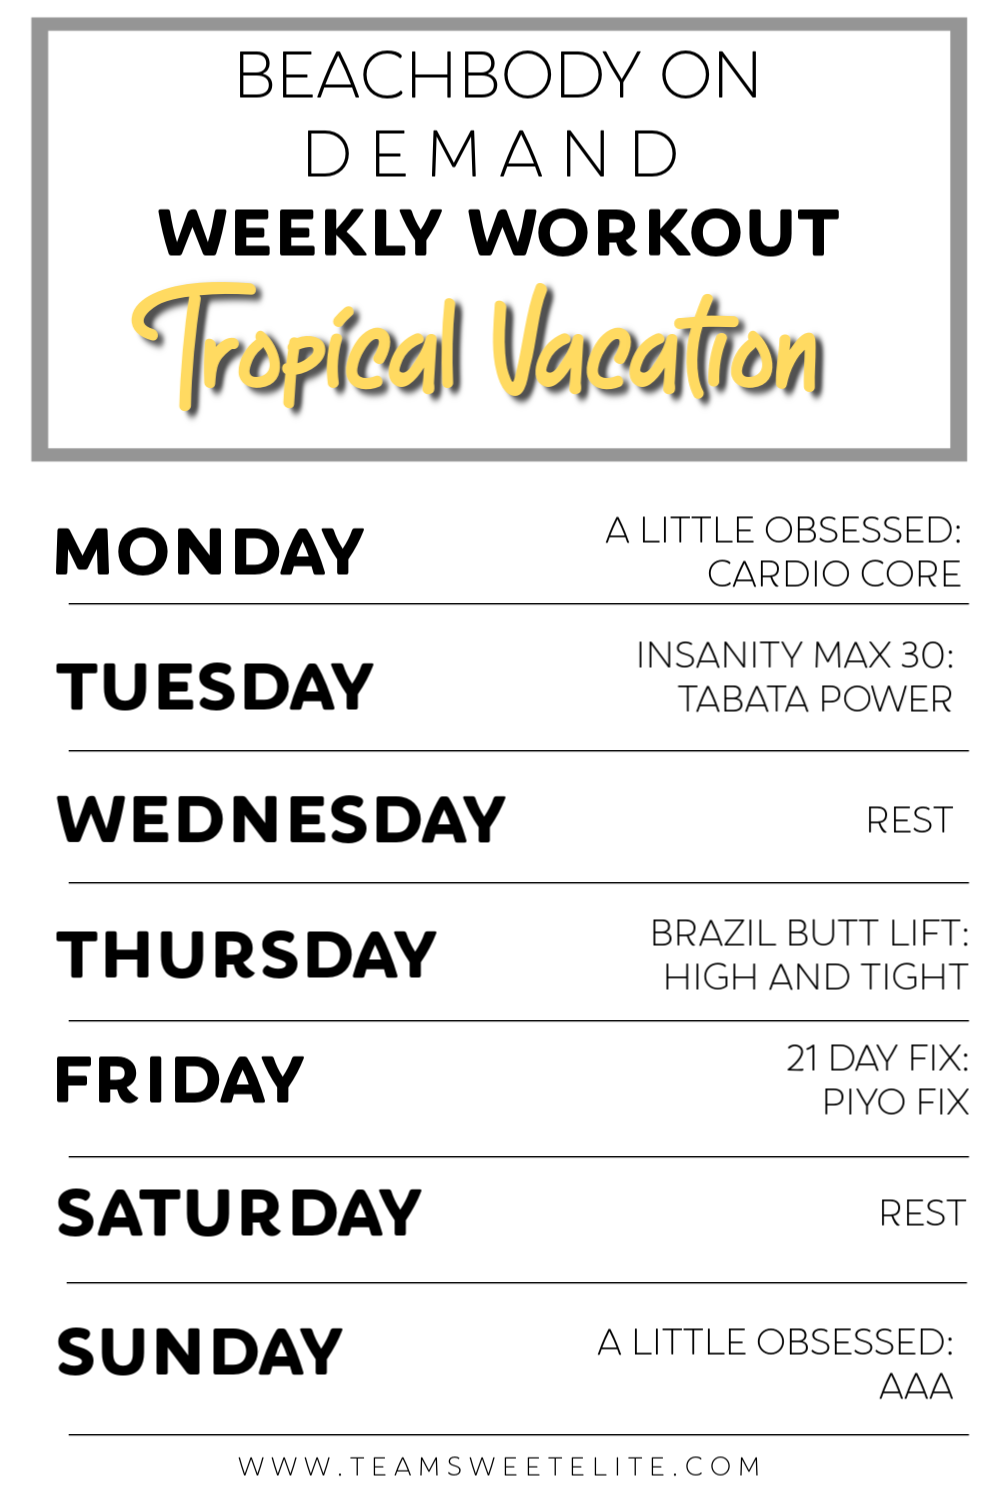 Beachbody On Demand Weekly Workout: Tropical Vacation Prep